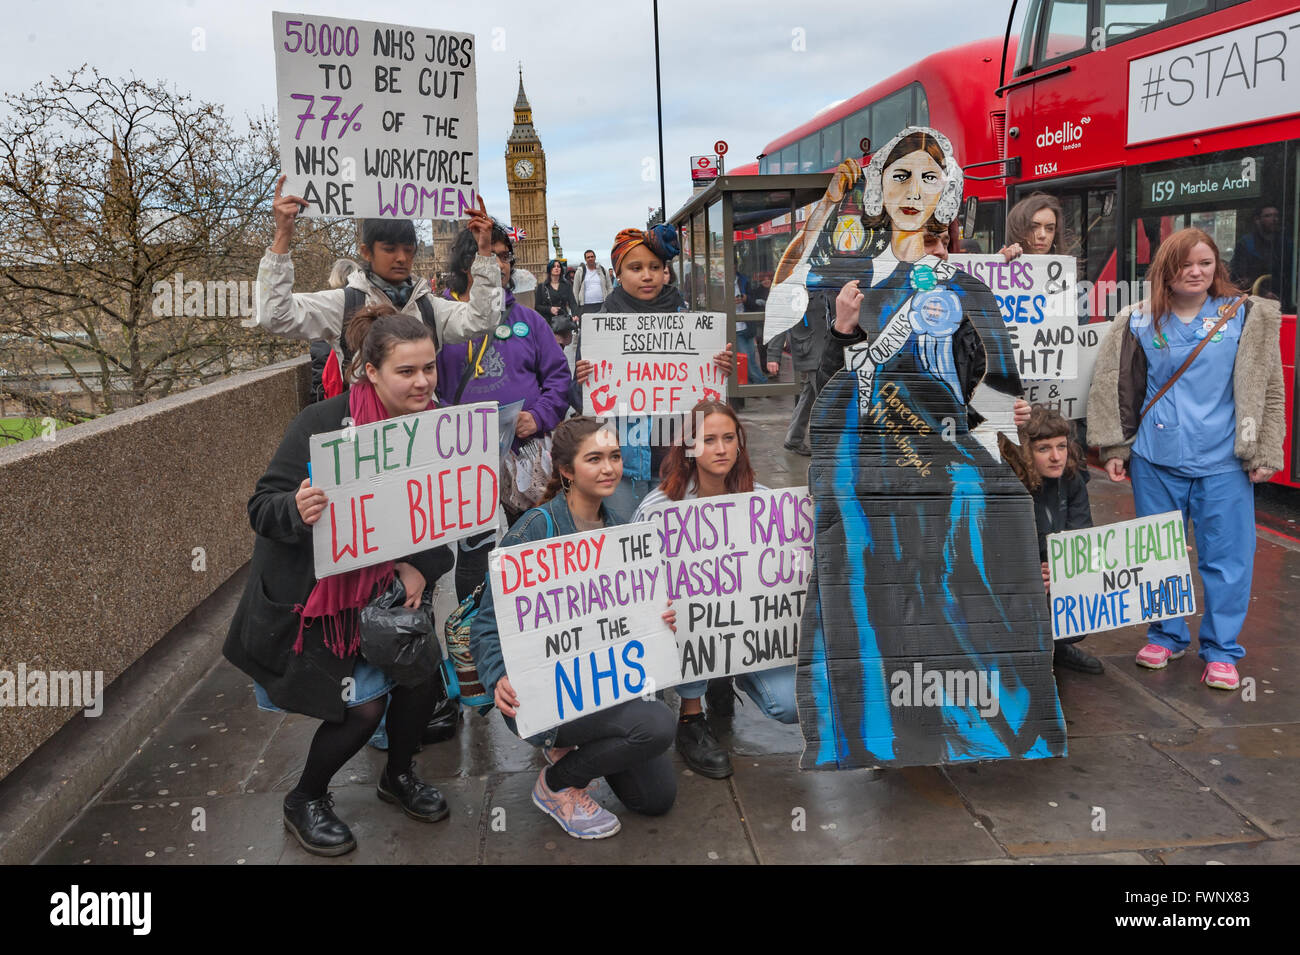 London, UK. 6th April, 2016. Sisters Uncut pose with a Florence Nightingale cutout, and NHS bursries campaigner - Stock Image